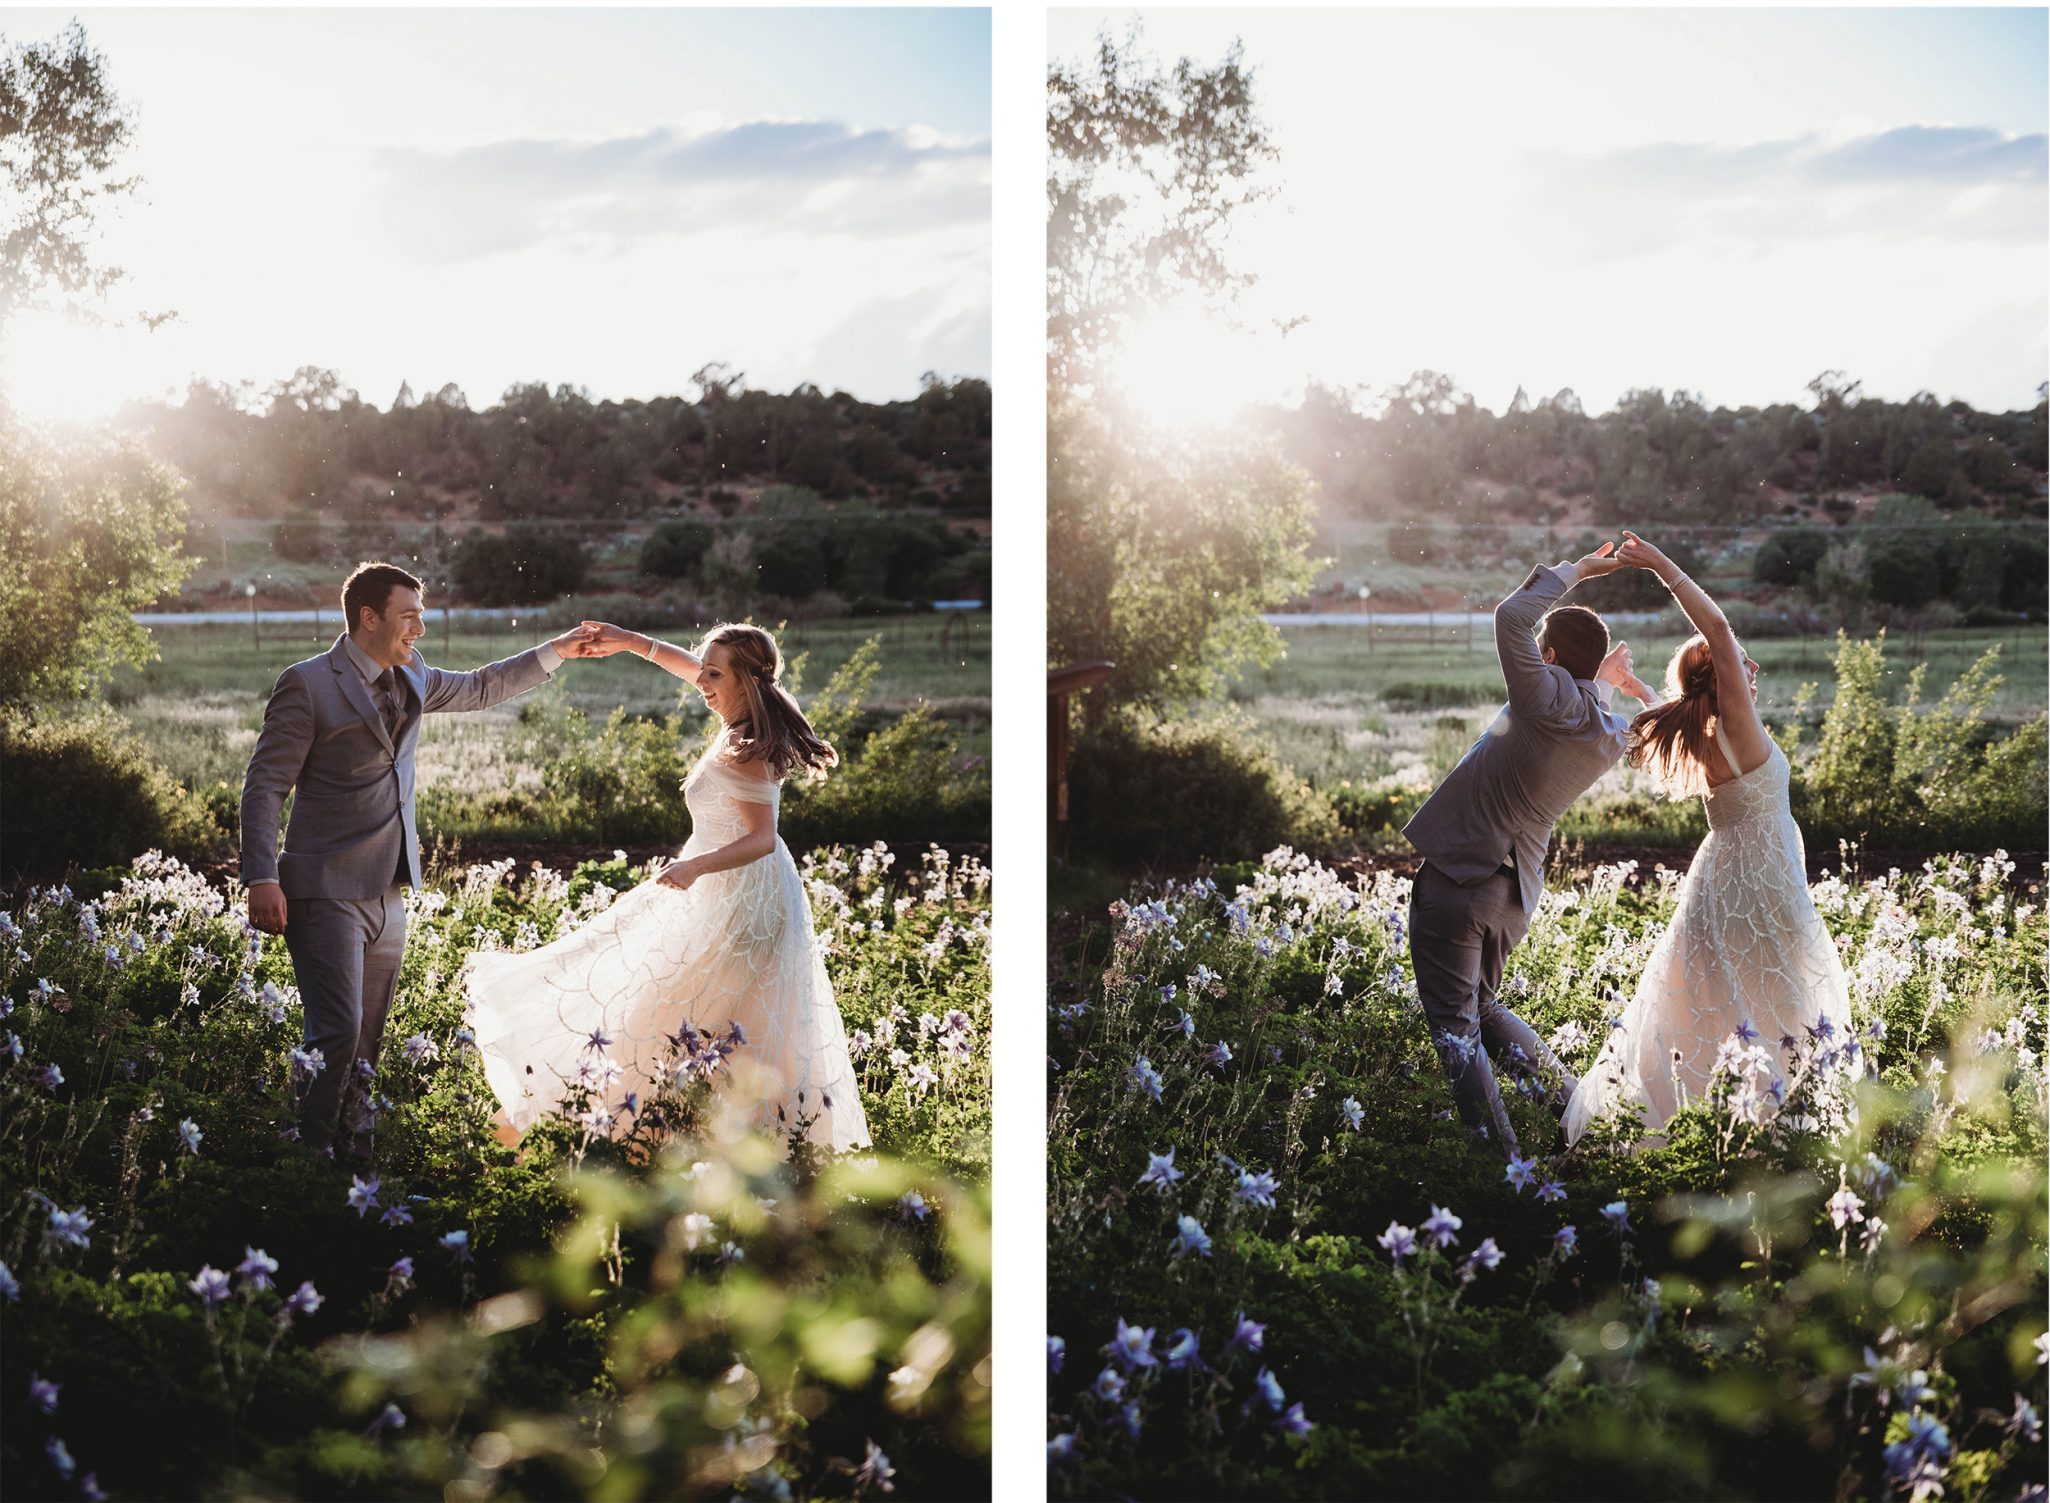 Bride & groom dancing in an iris field in Durango Colorado